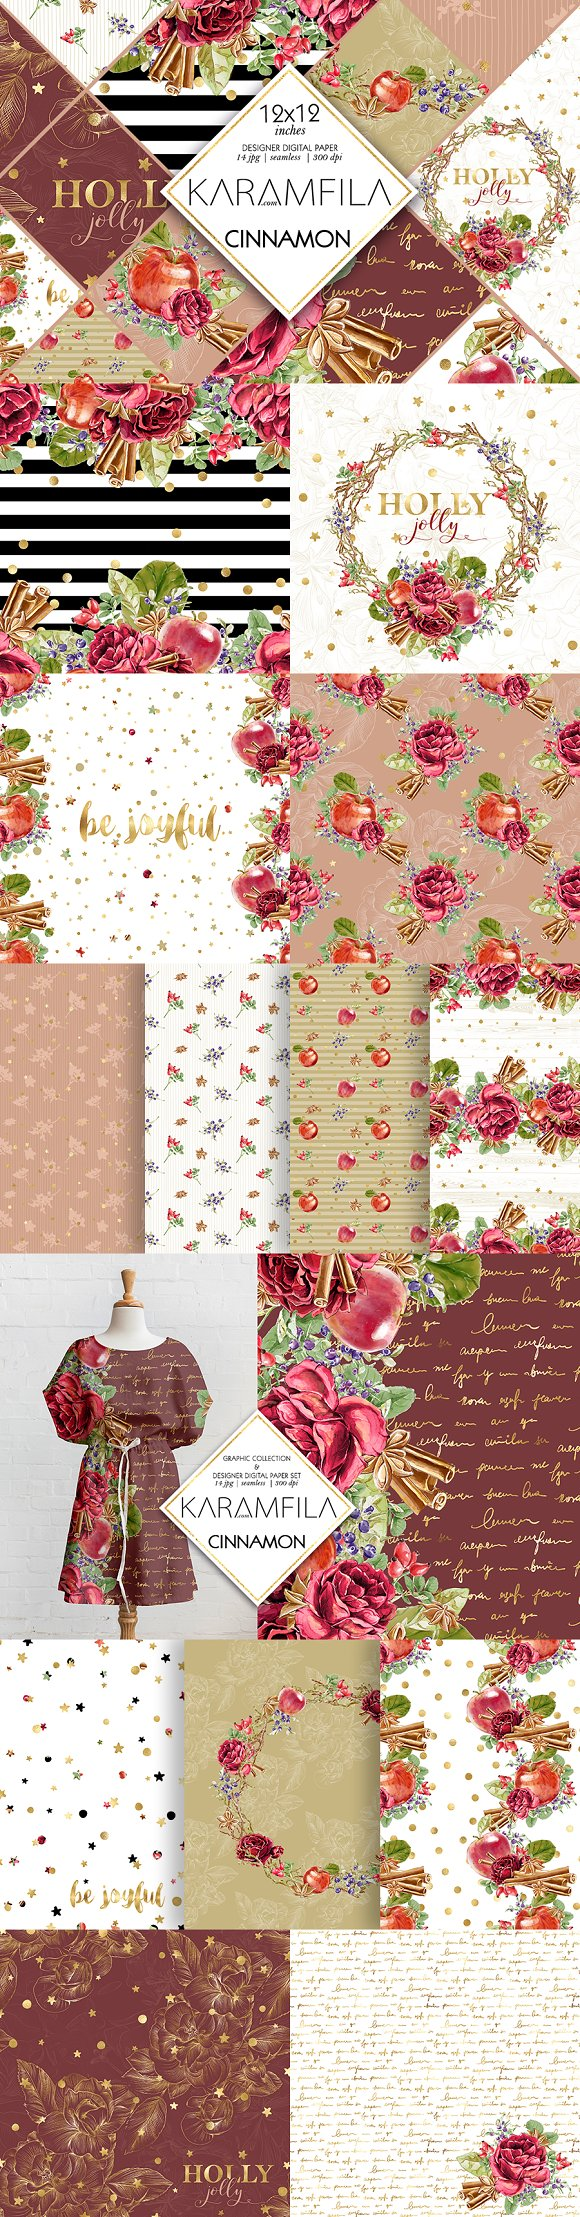 Cinnamon And Apples Patterns